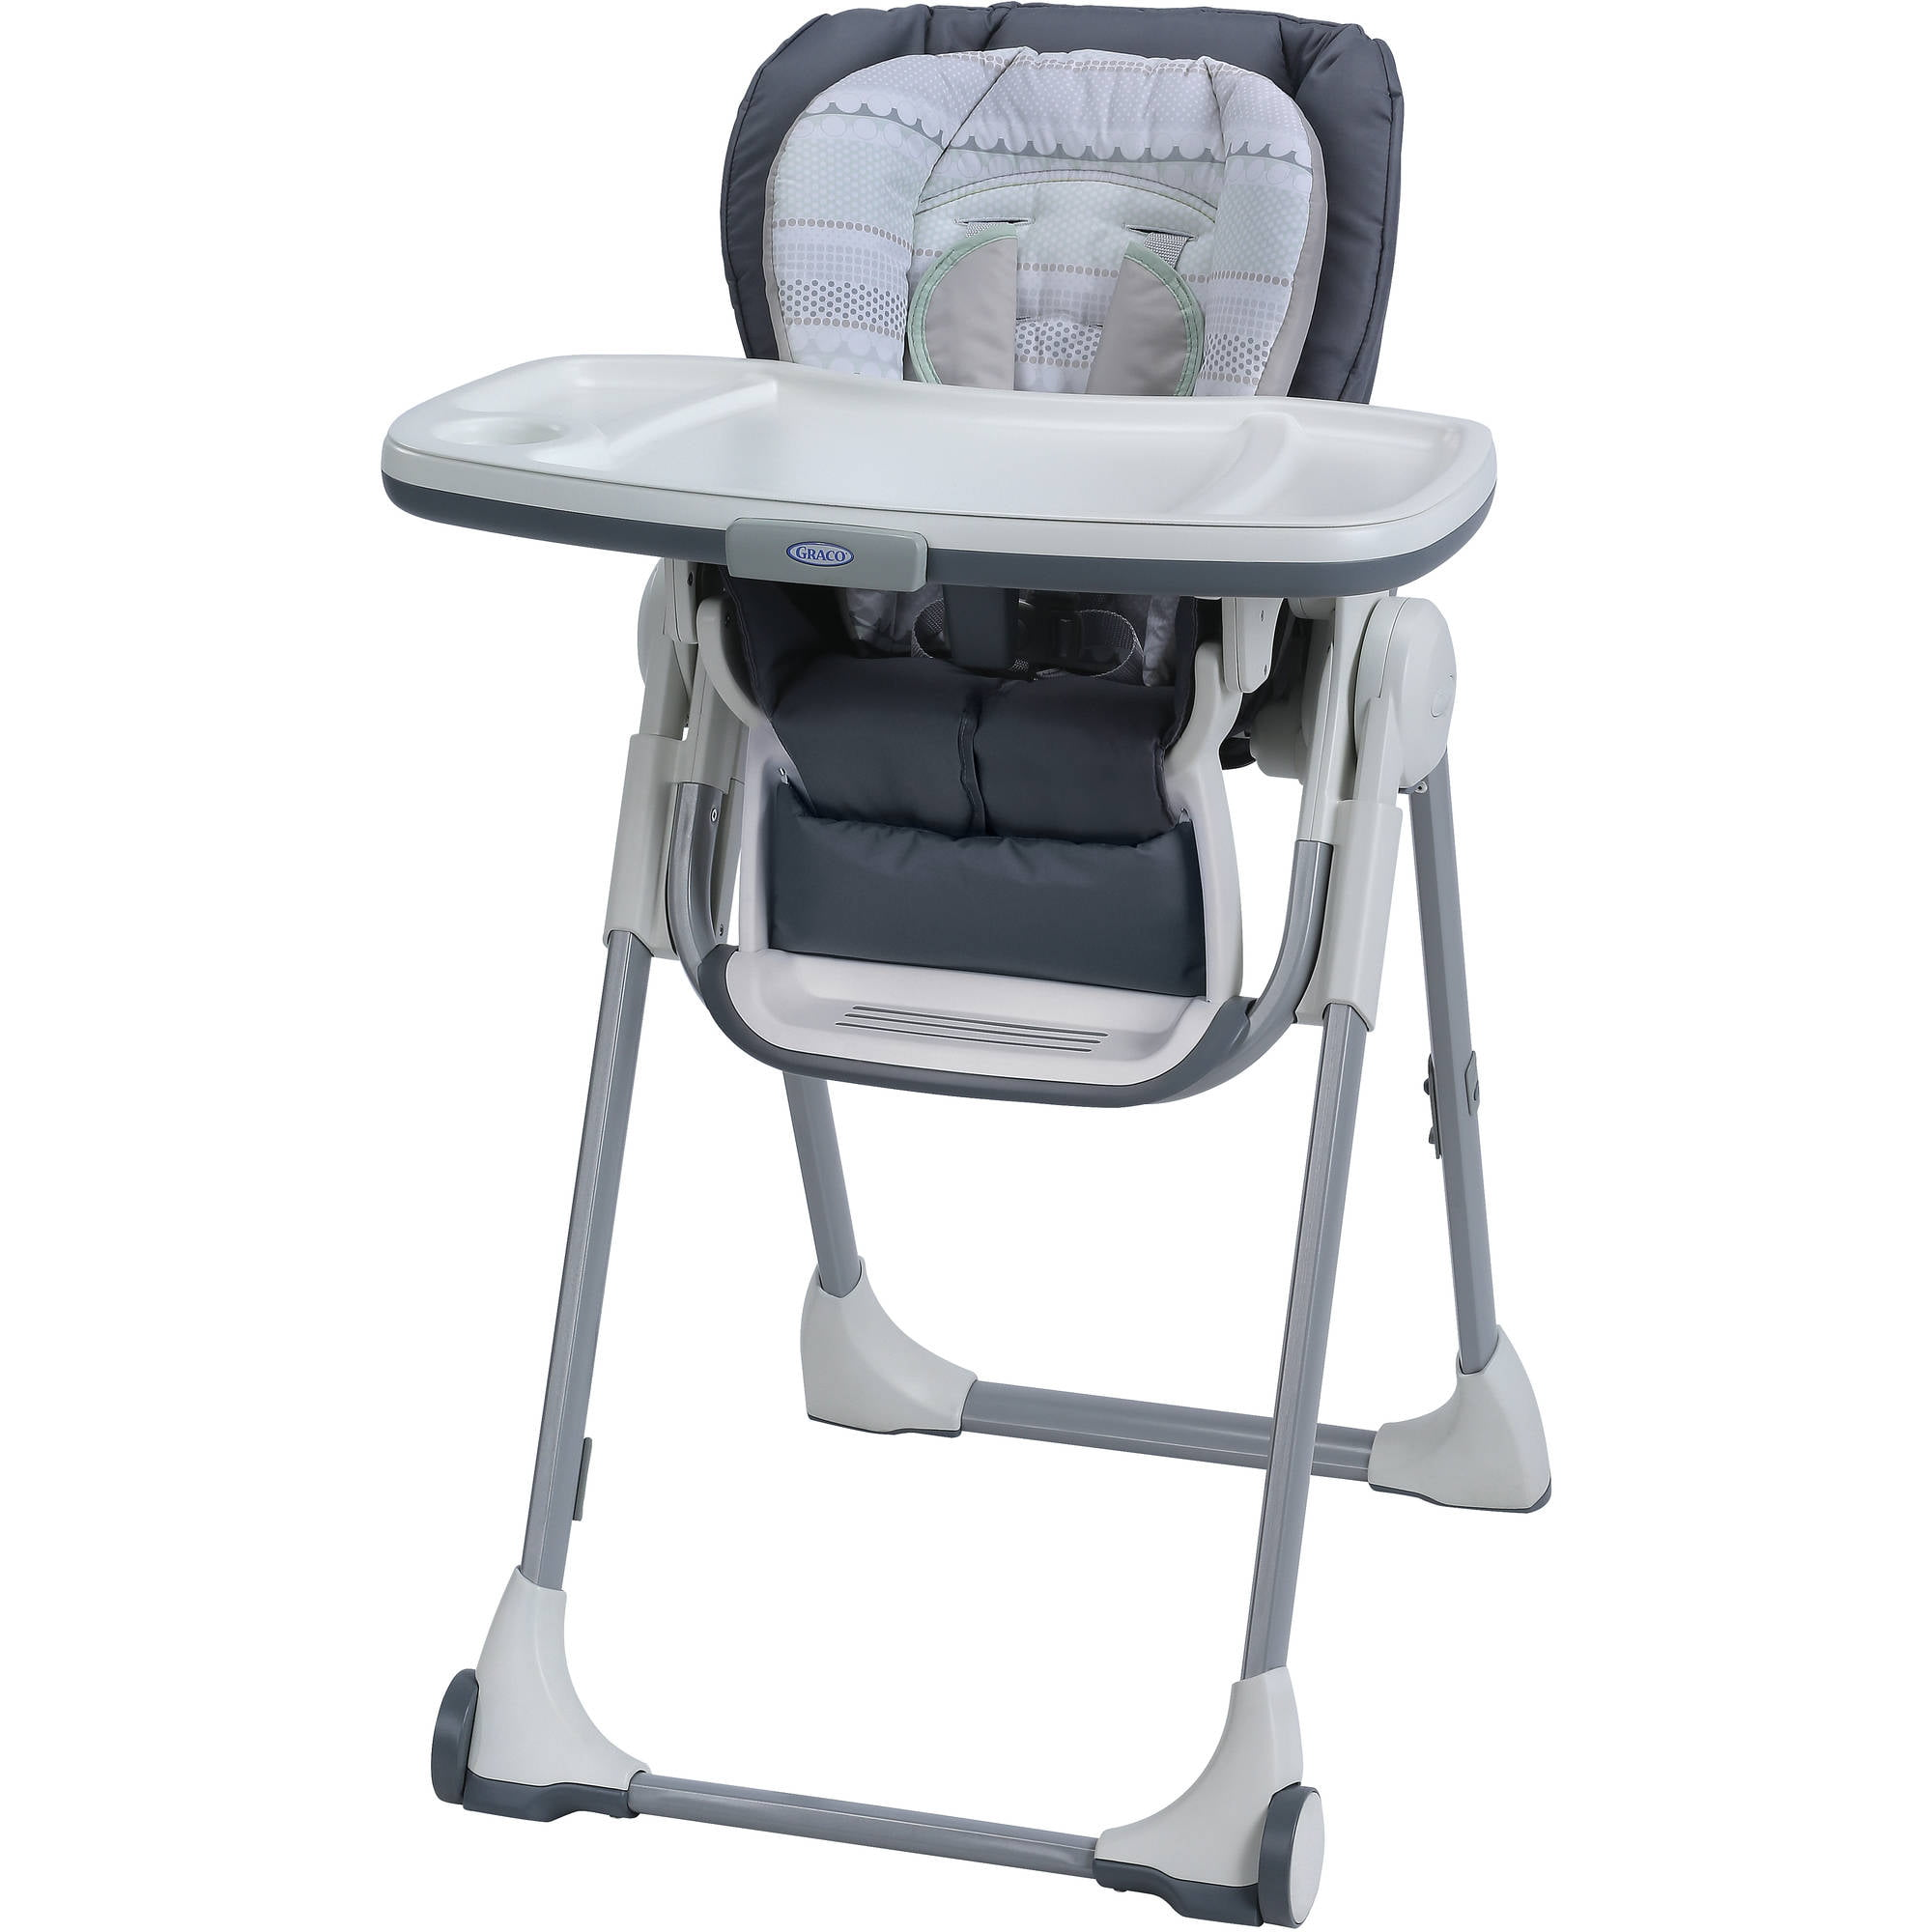 Graco Swift Fold LX High Chair Mason Walmart